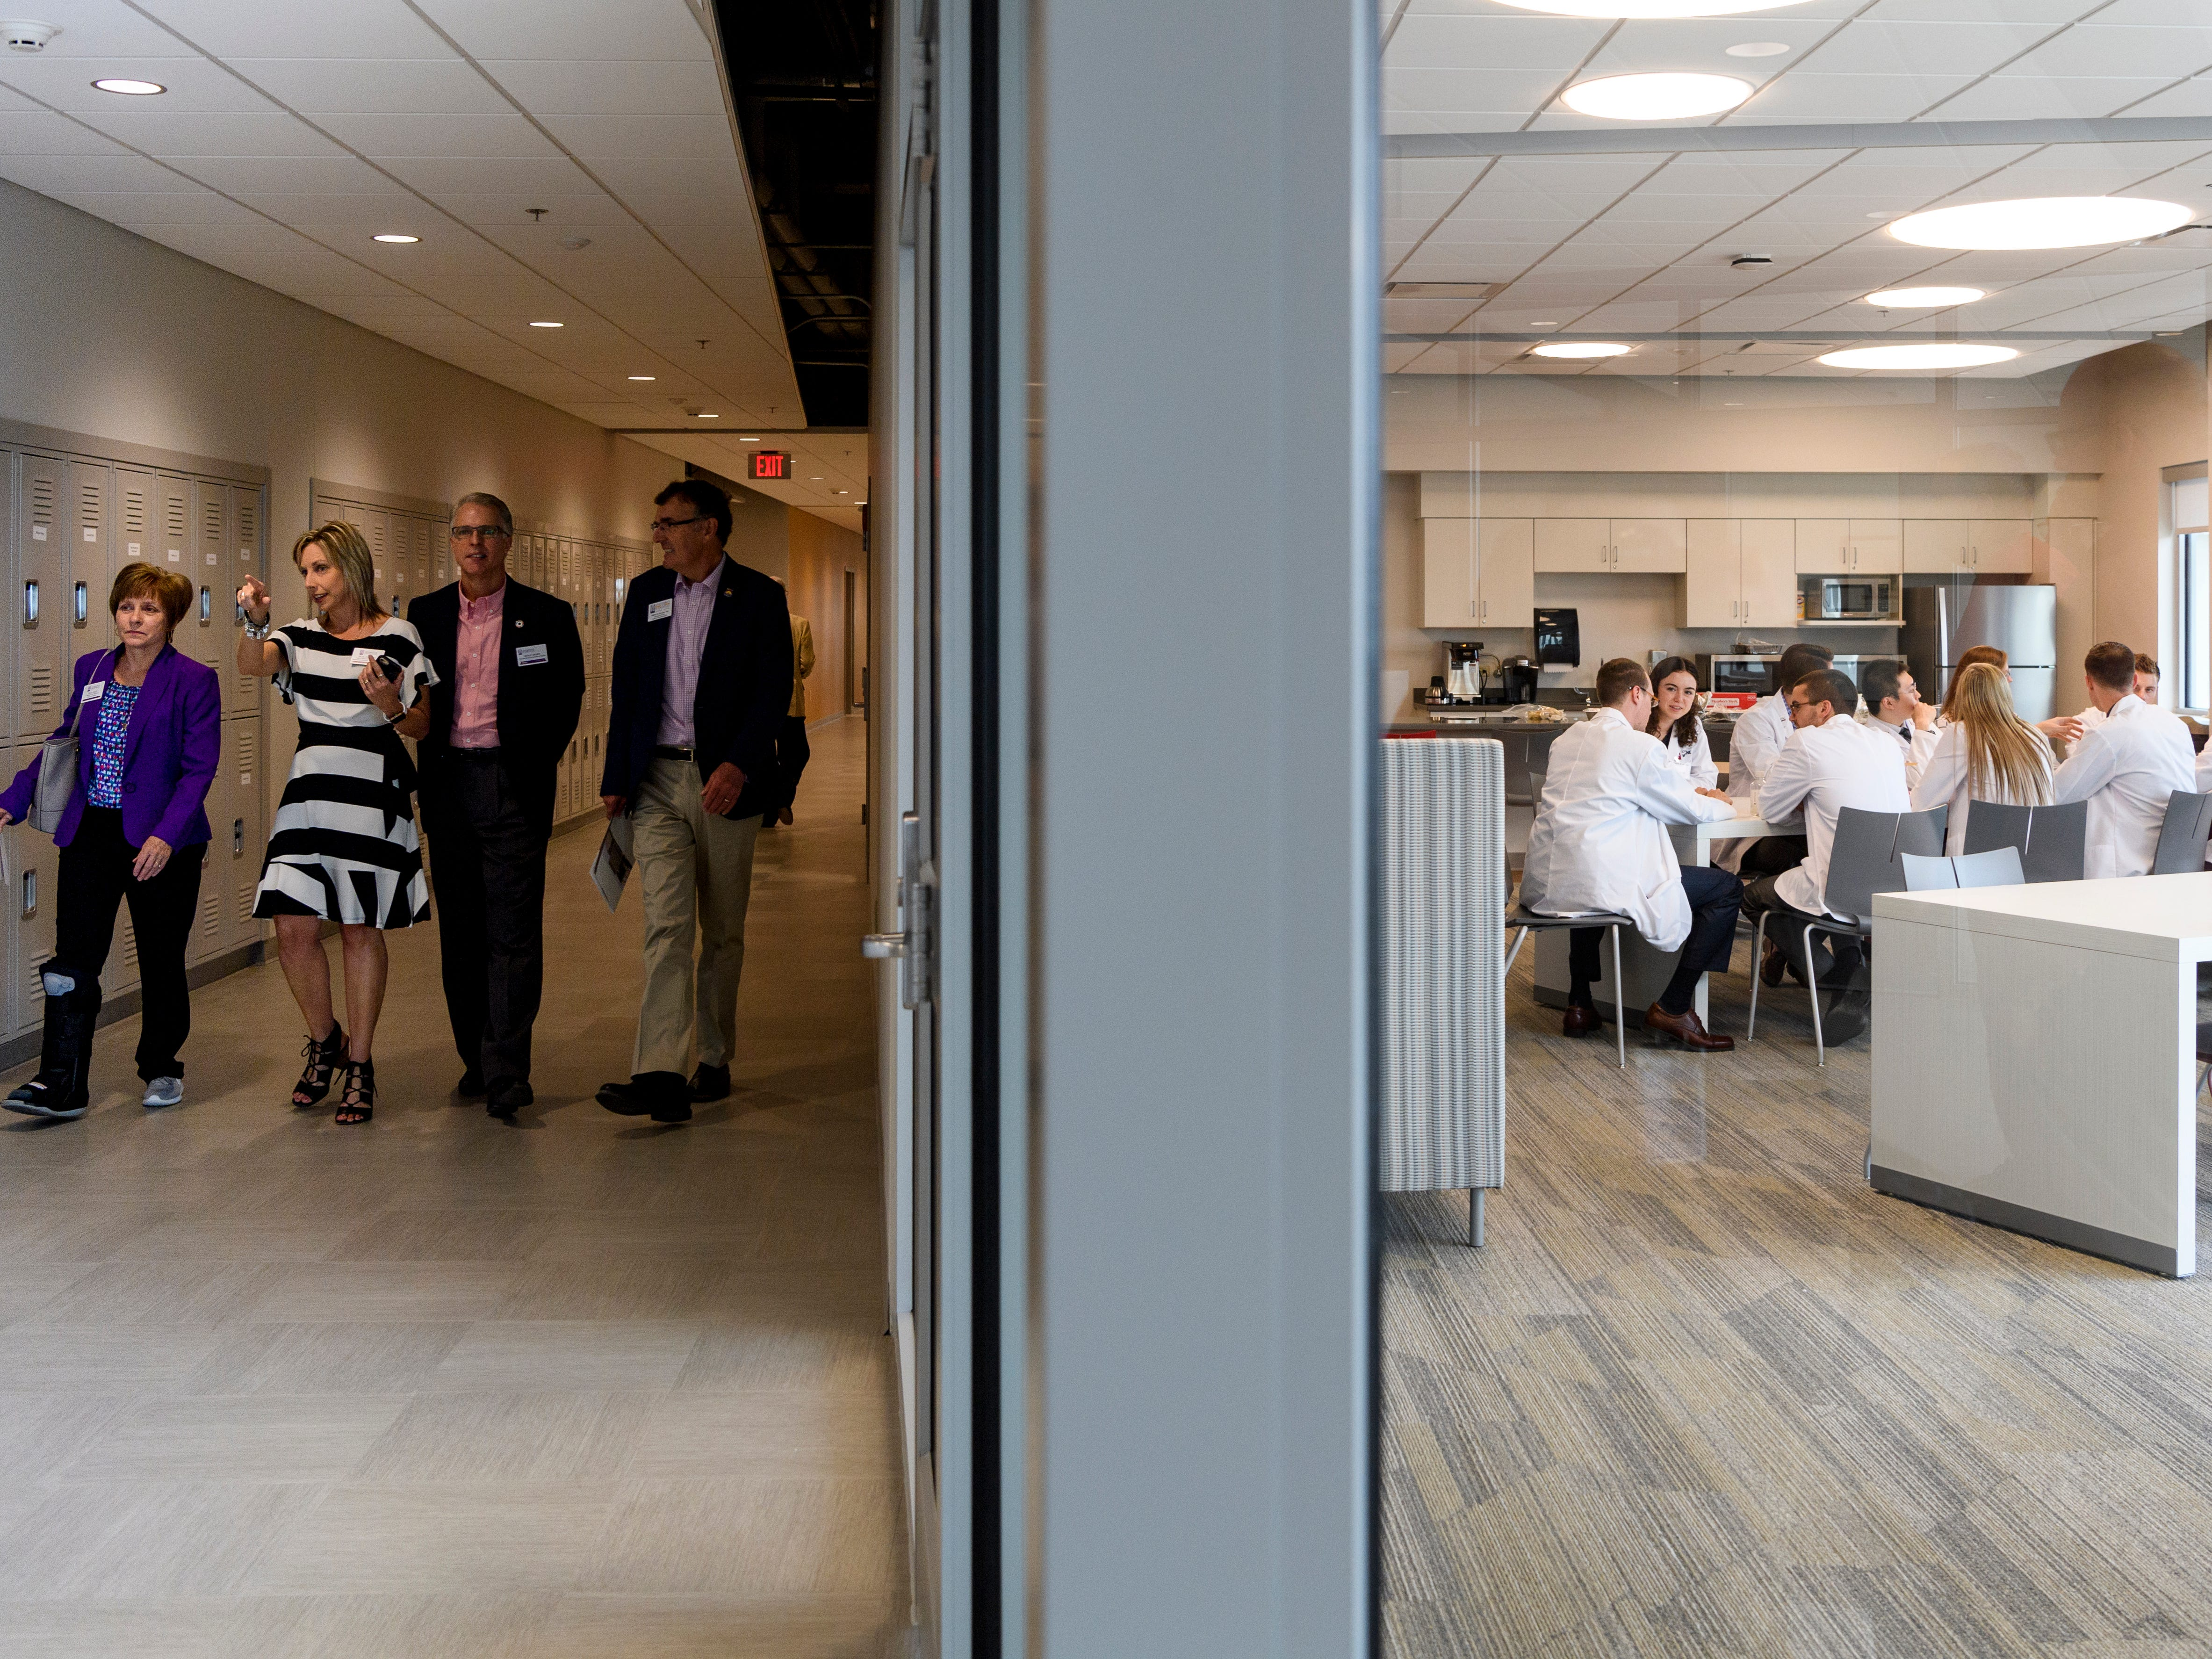 After the building dedication ceremony and ribbon cutting, community members tour the new Stone Family Center for Health Sciences as medical students, right, eat lunch inside a student lounge, Thursday afternoon, Aug. 9, 2018.